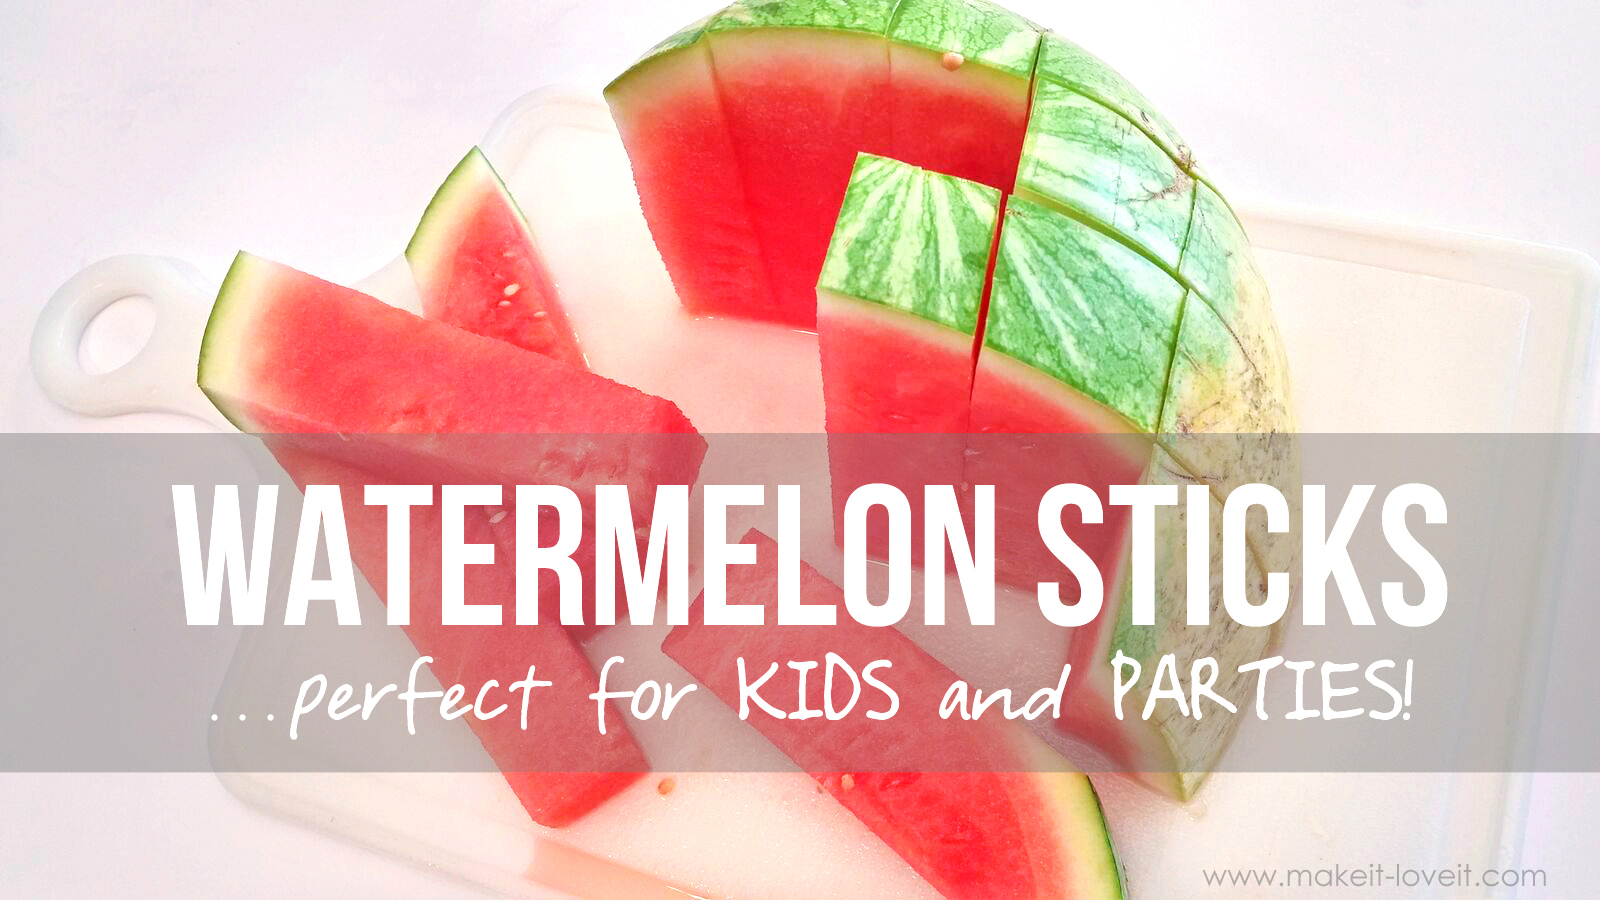 watermelon-sticks-FINAL-2